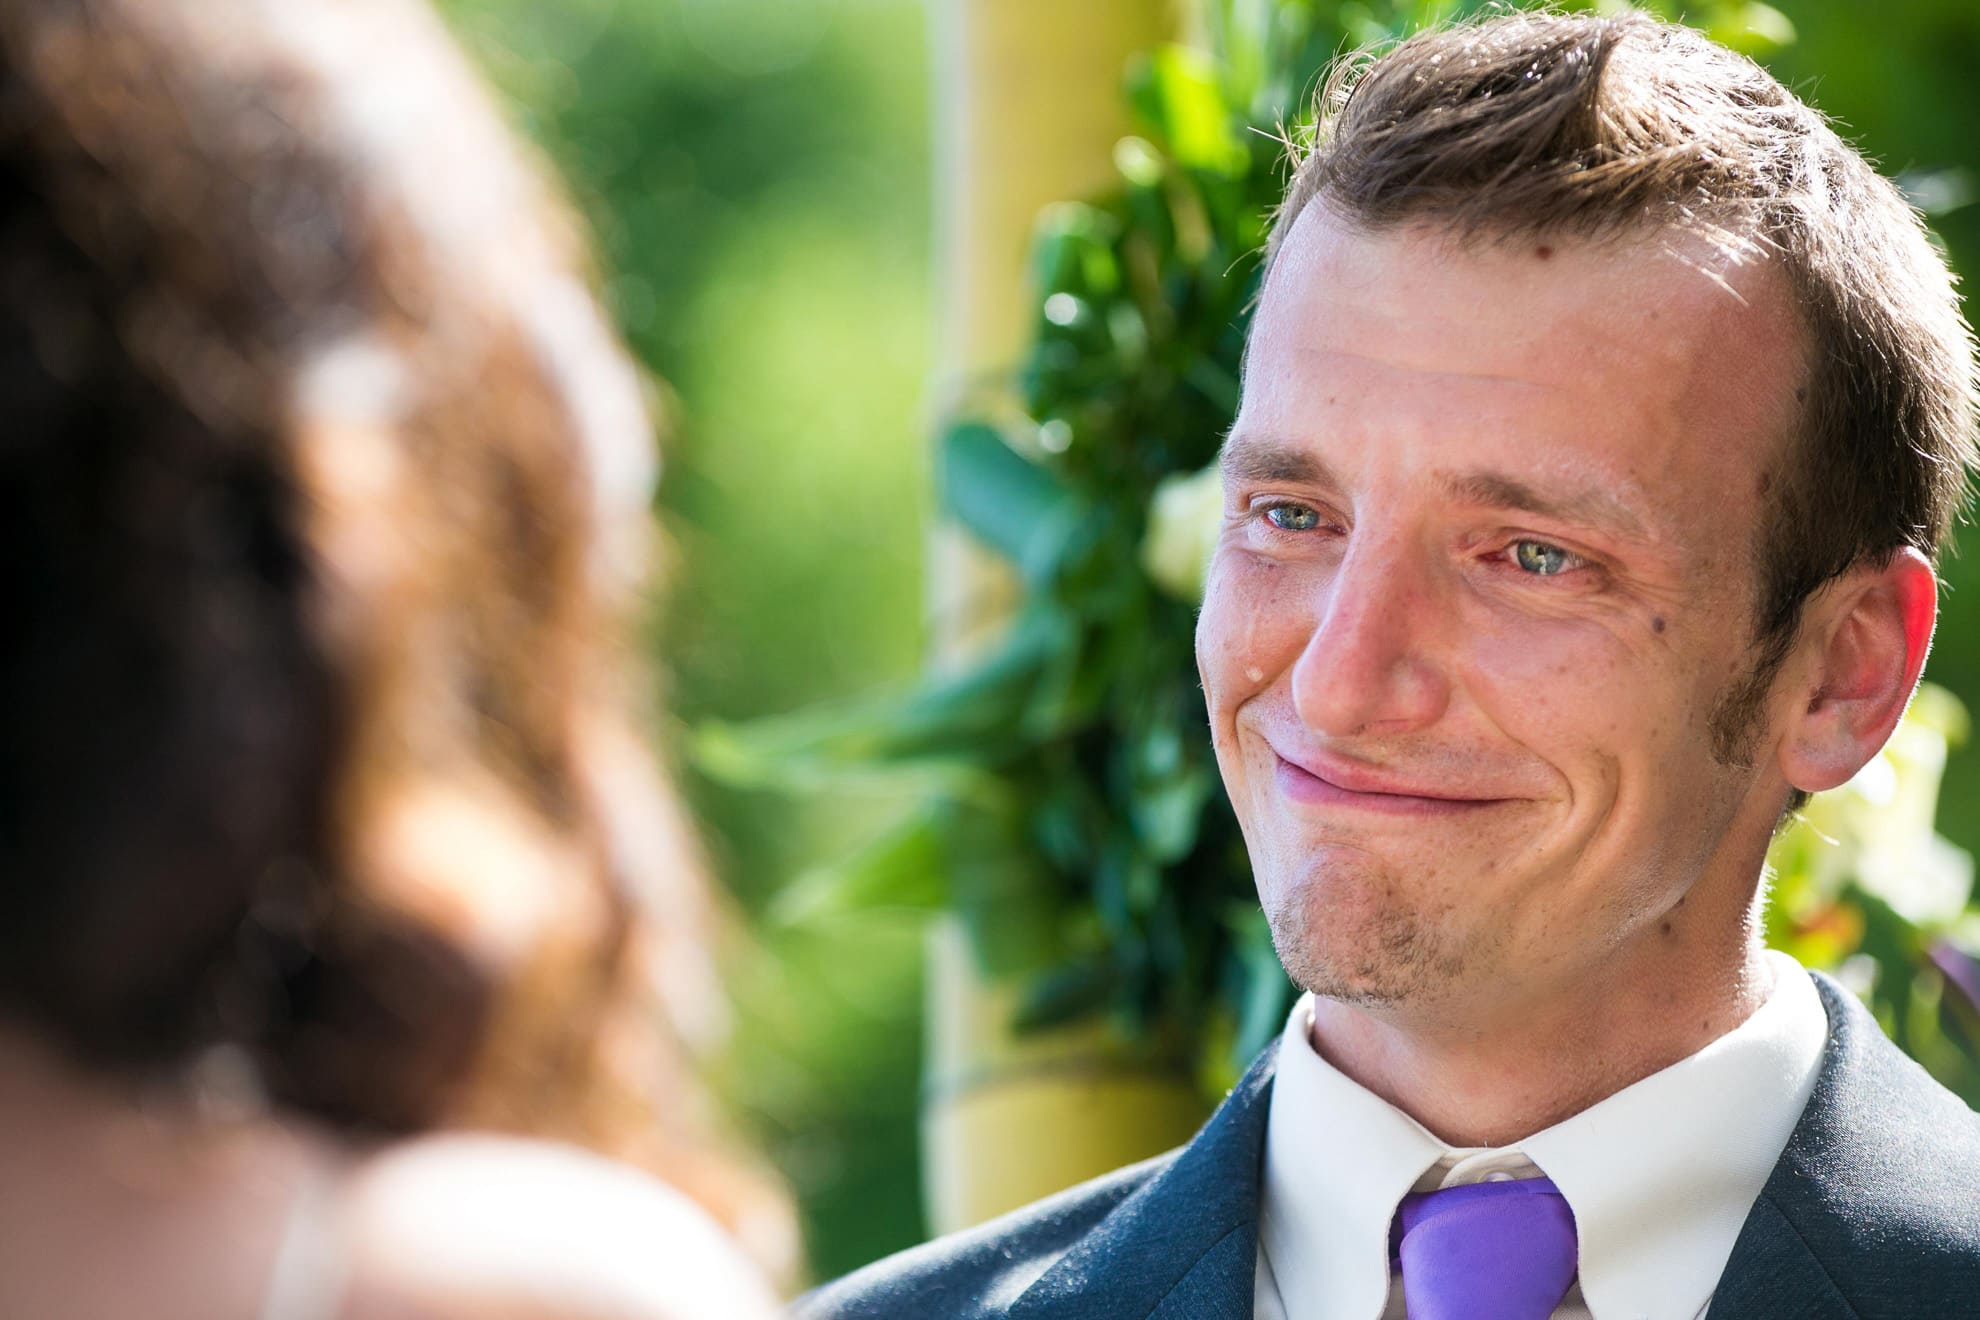 Groom crying when he sees his bride.